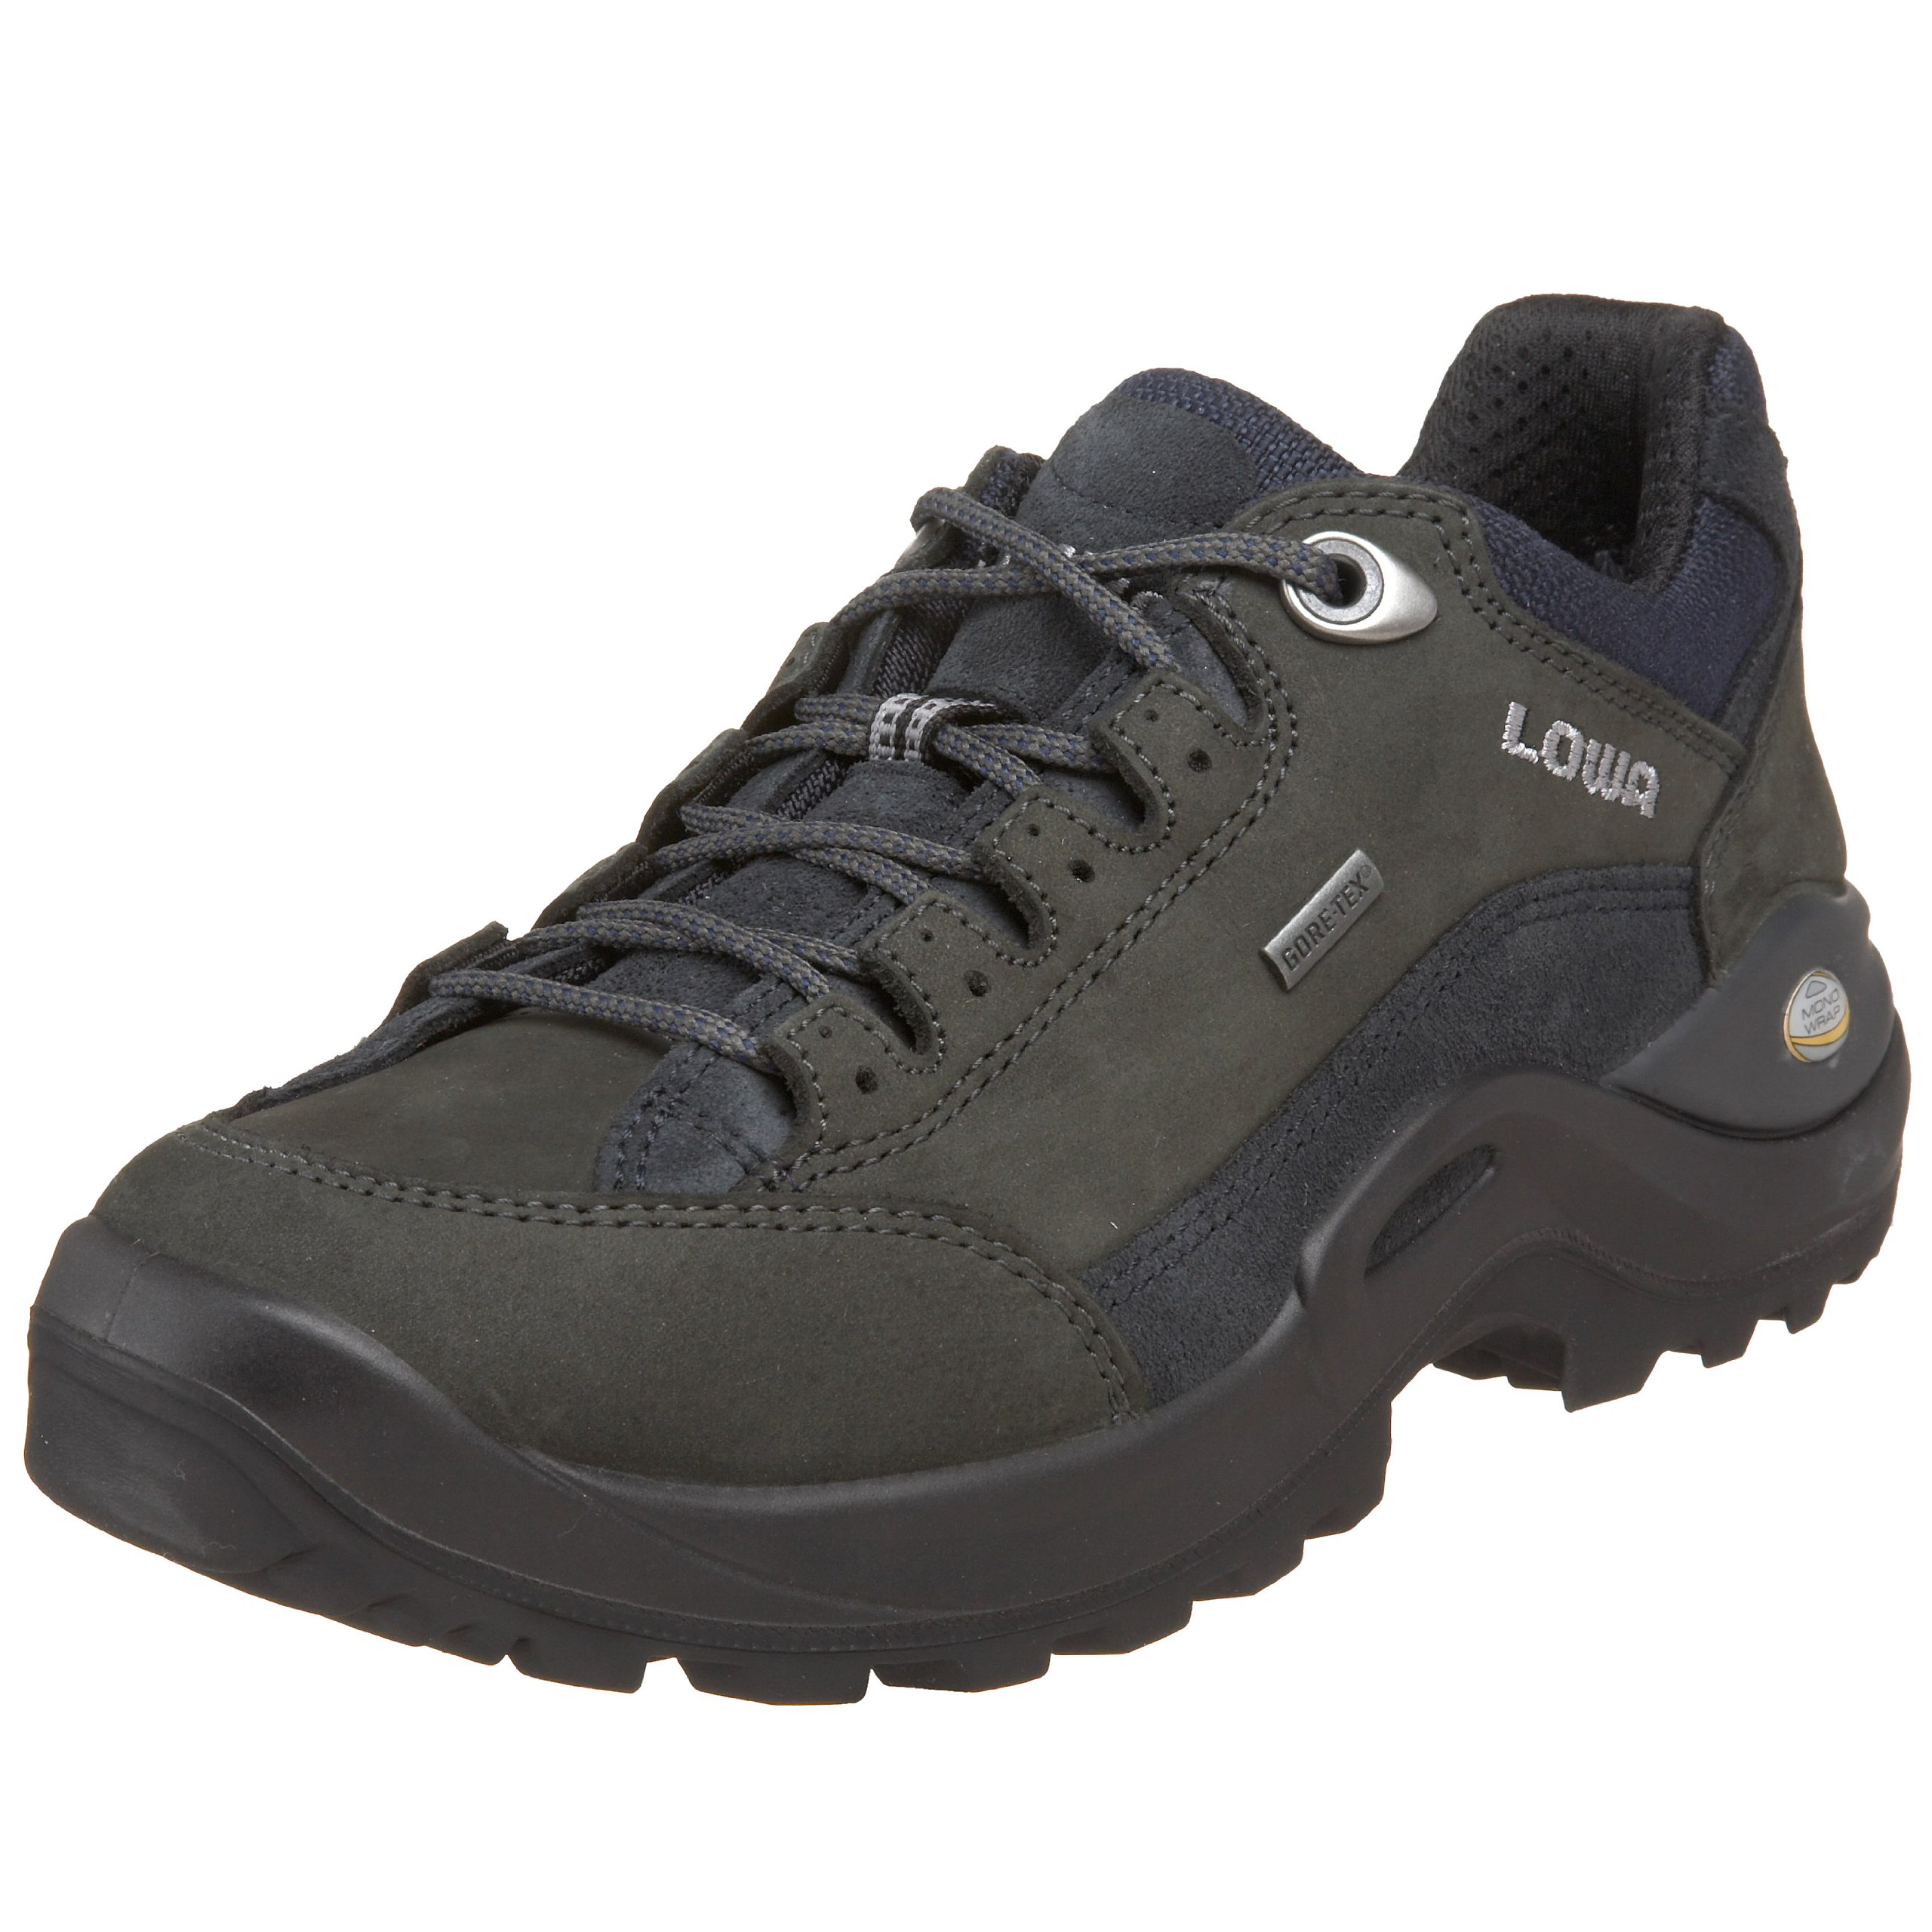 Lowa Women's Renegade II GTX LO Dark Grey/Navy Hiking Shoe - 7 B(M) US